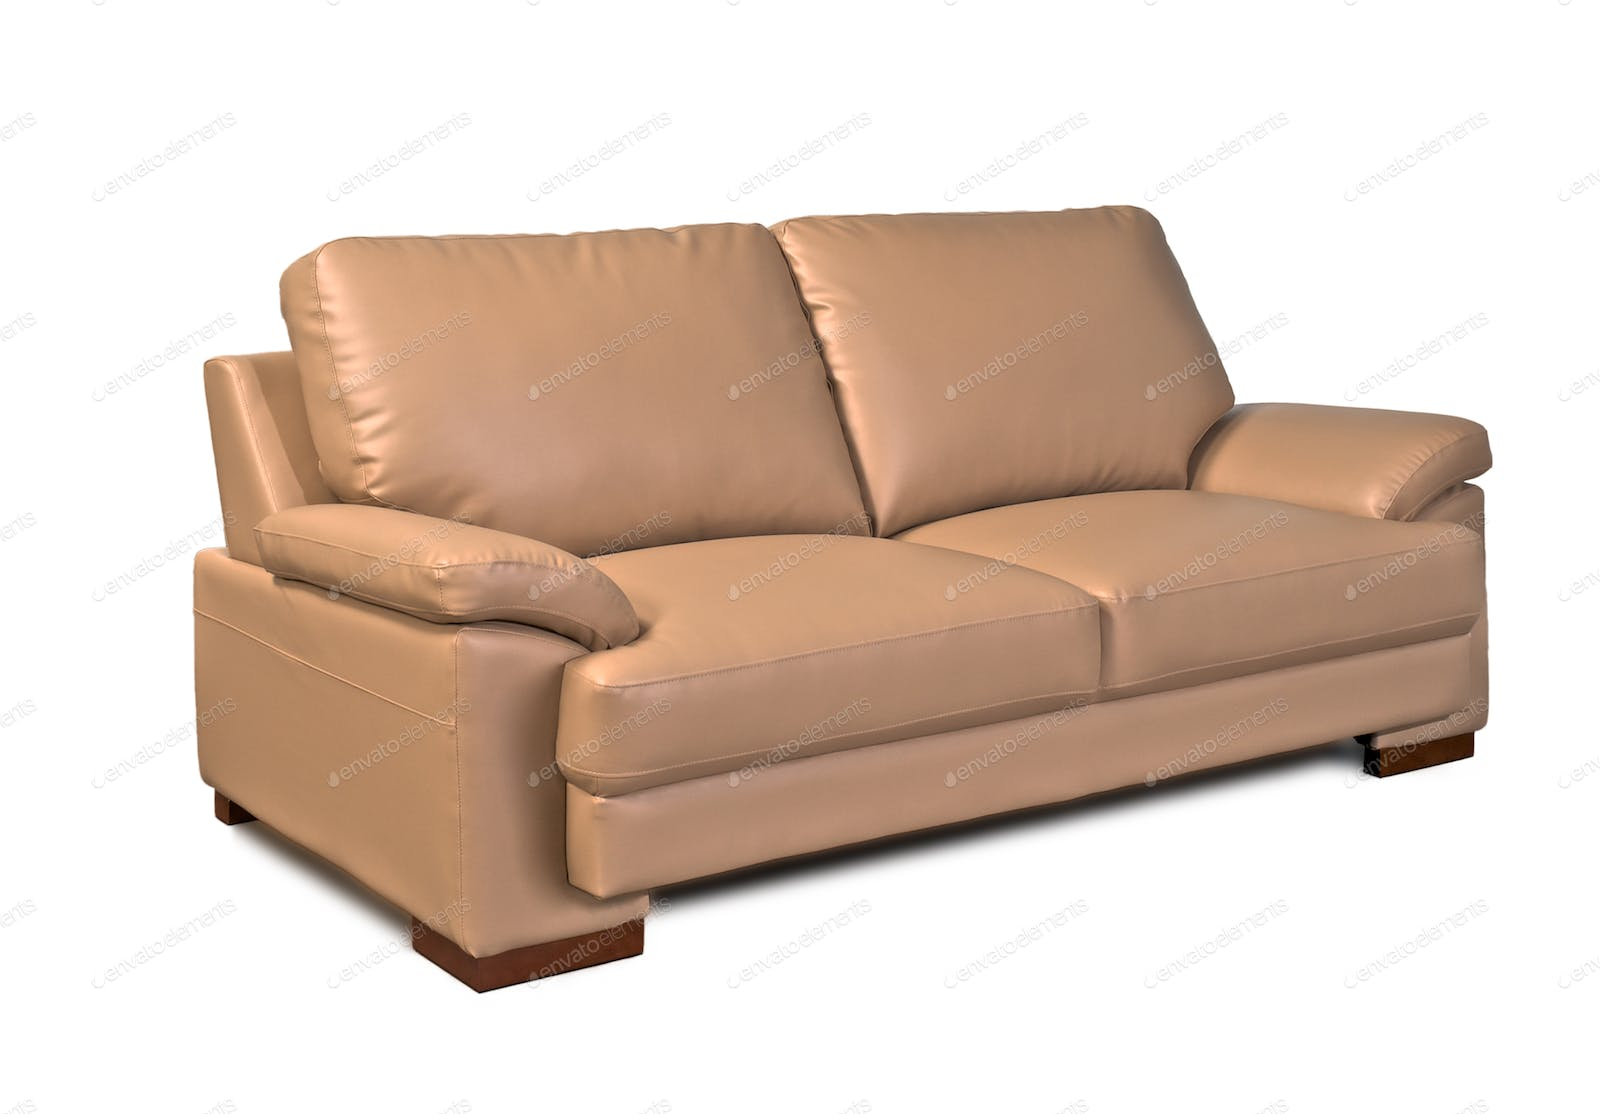 Light Brown Leather Sofa Two Seater Facing Right Photo By Praethip